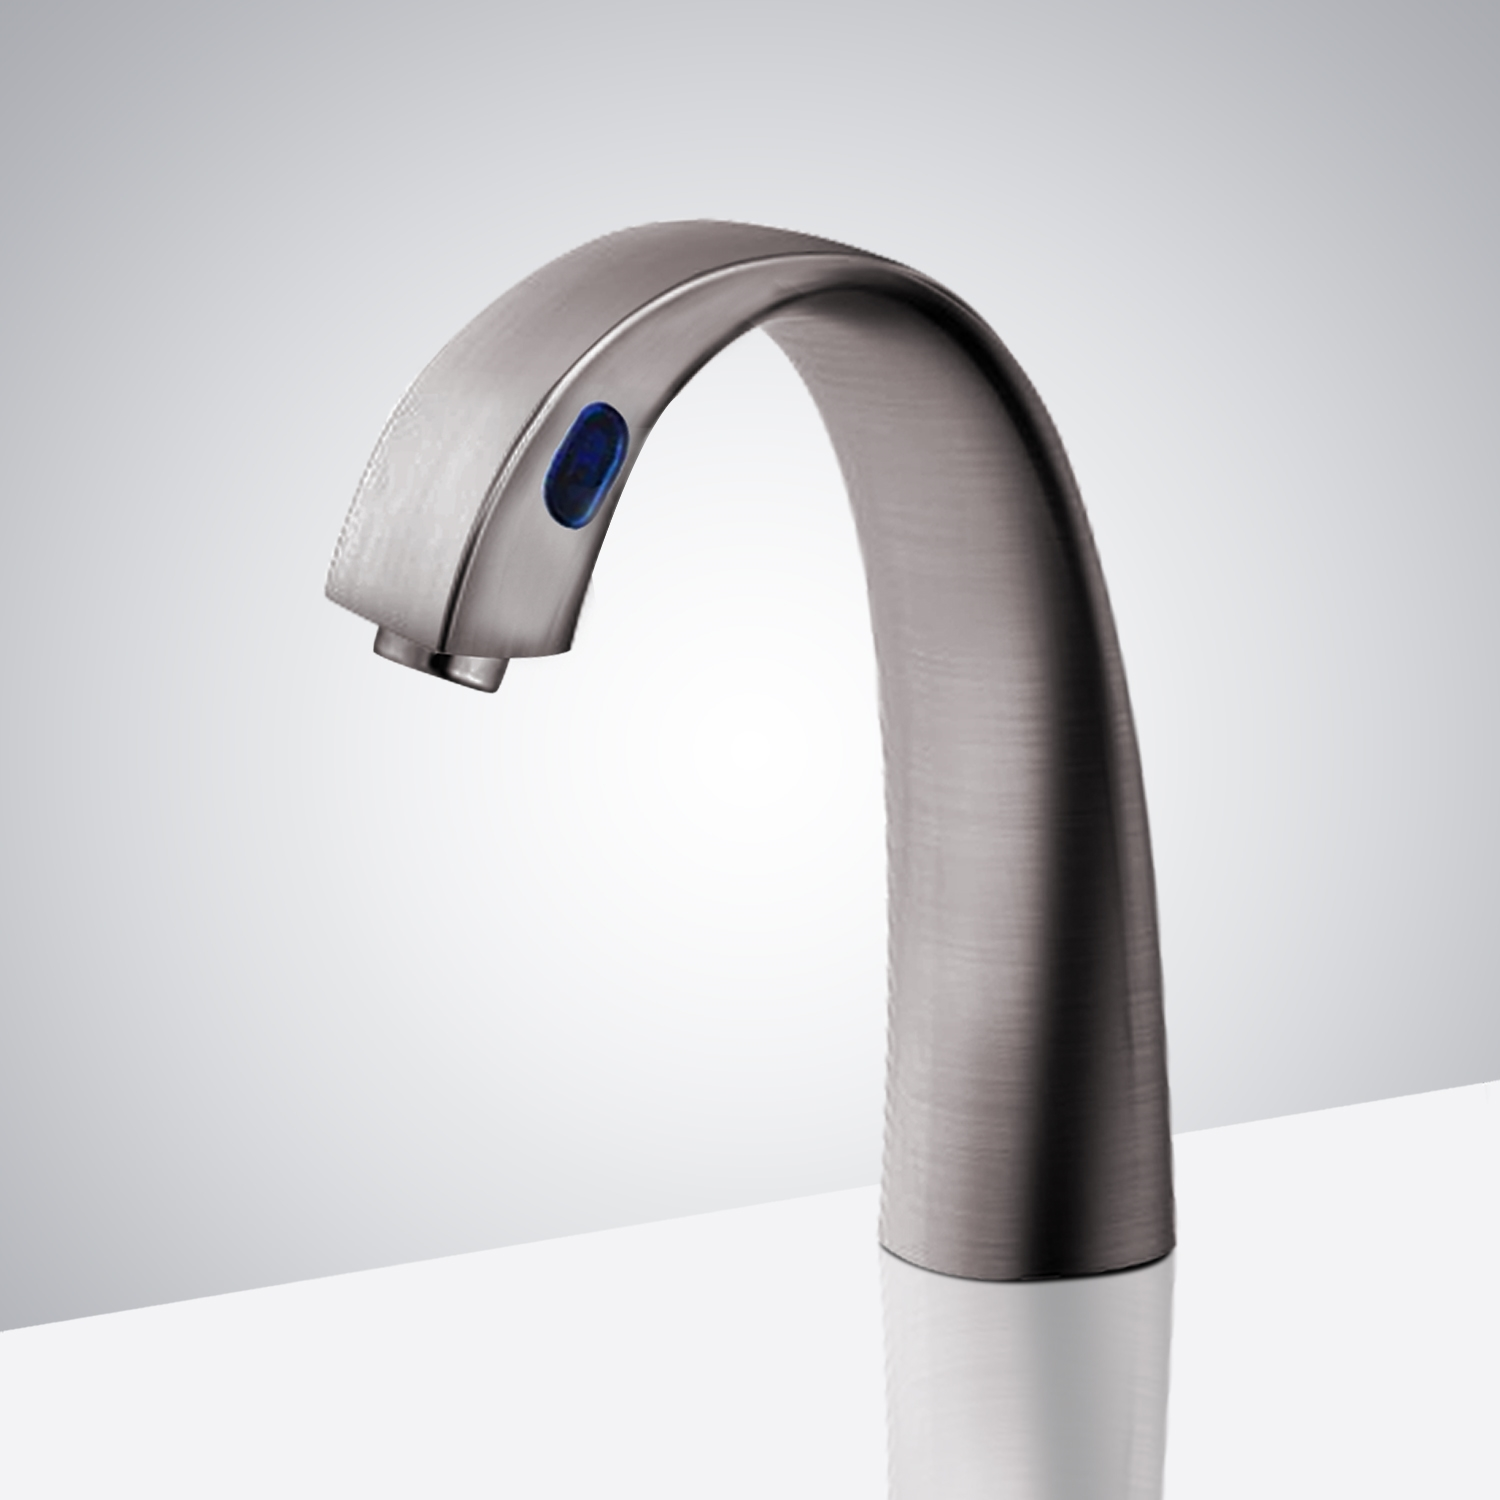 Fontana Commercial Brushed Nickel Automatic Sensor Faucet